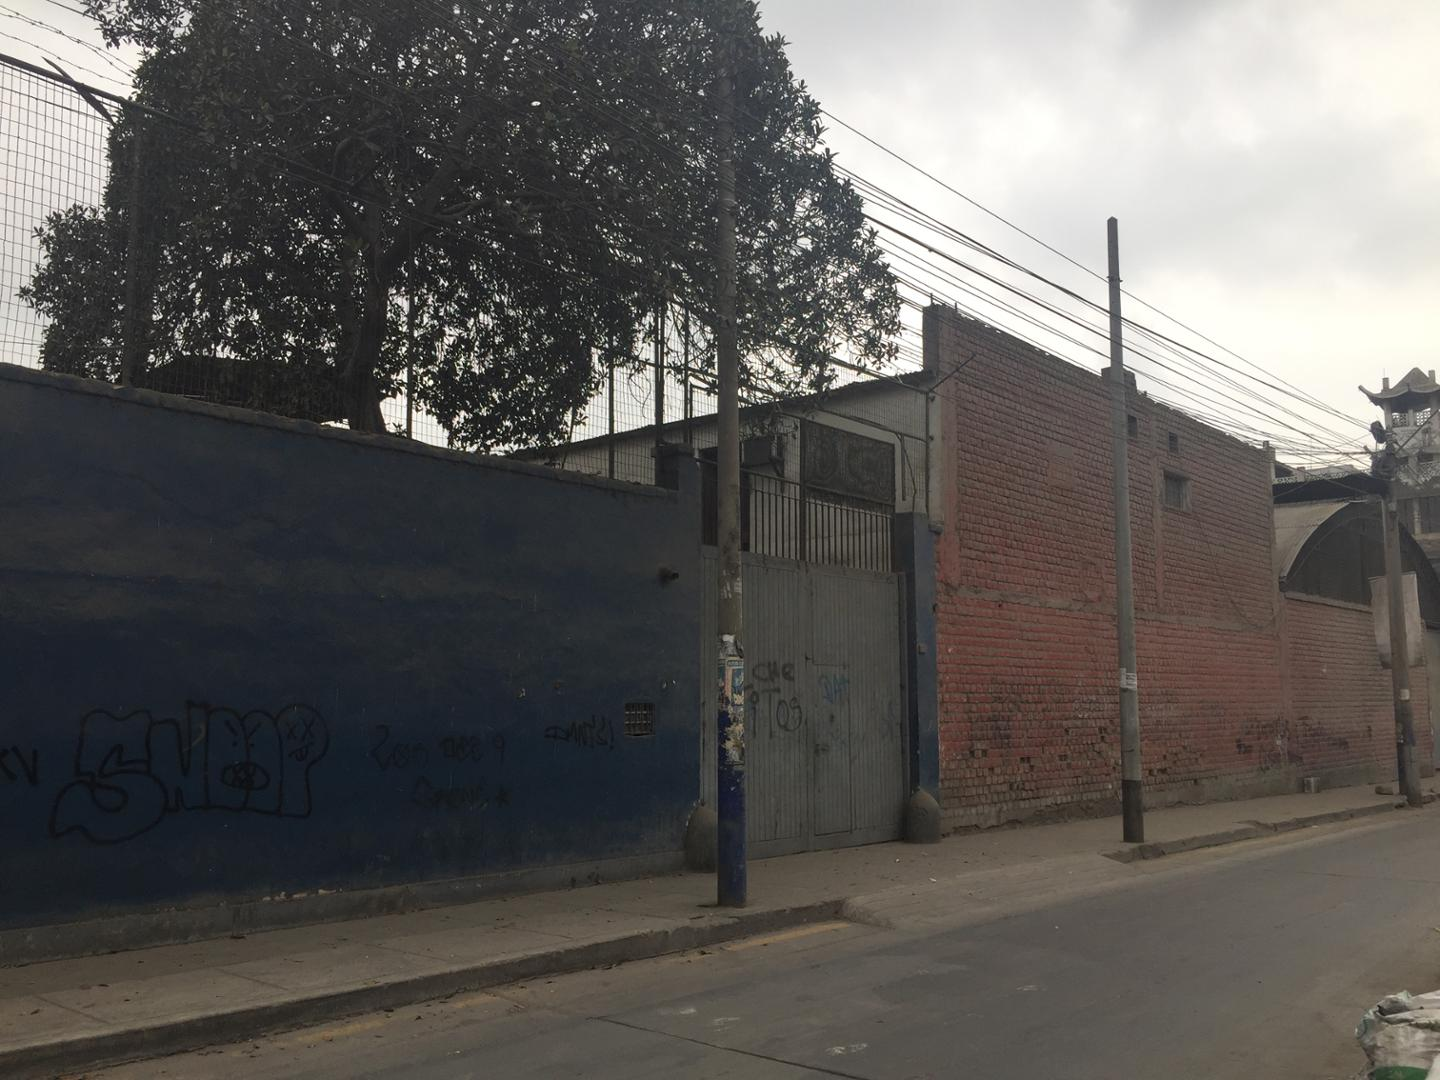 Local comercial en Alquiler Av. Andres Avelino Caceres 402, Ate, Ate, Lima